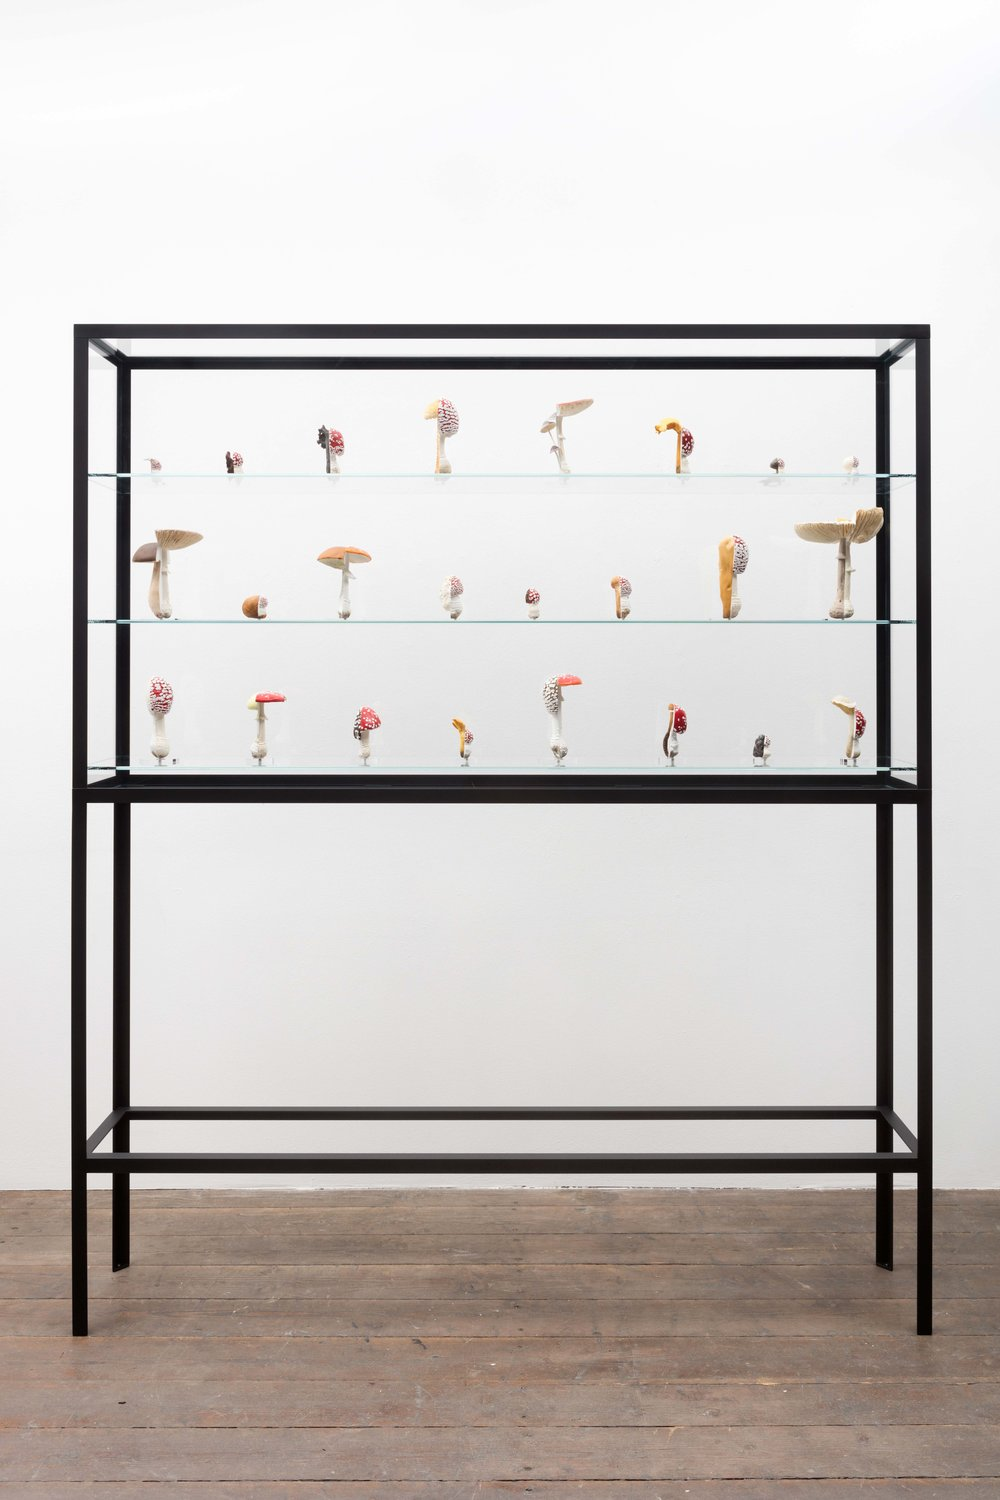 Carsten Höller   Double Mushroom Vitrine (Twenty-Fourfold)  2016 Cast polyurethane mushroom replicas in various sizes, acrylic paint, glass discs, metal pins, vitrine glass, powder-coated metal framework. Unique 145 x 175 x 25 cm